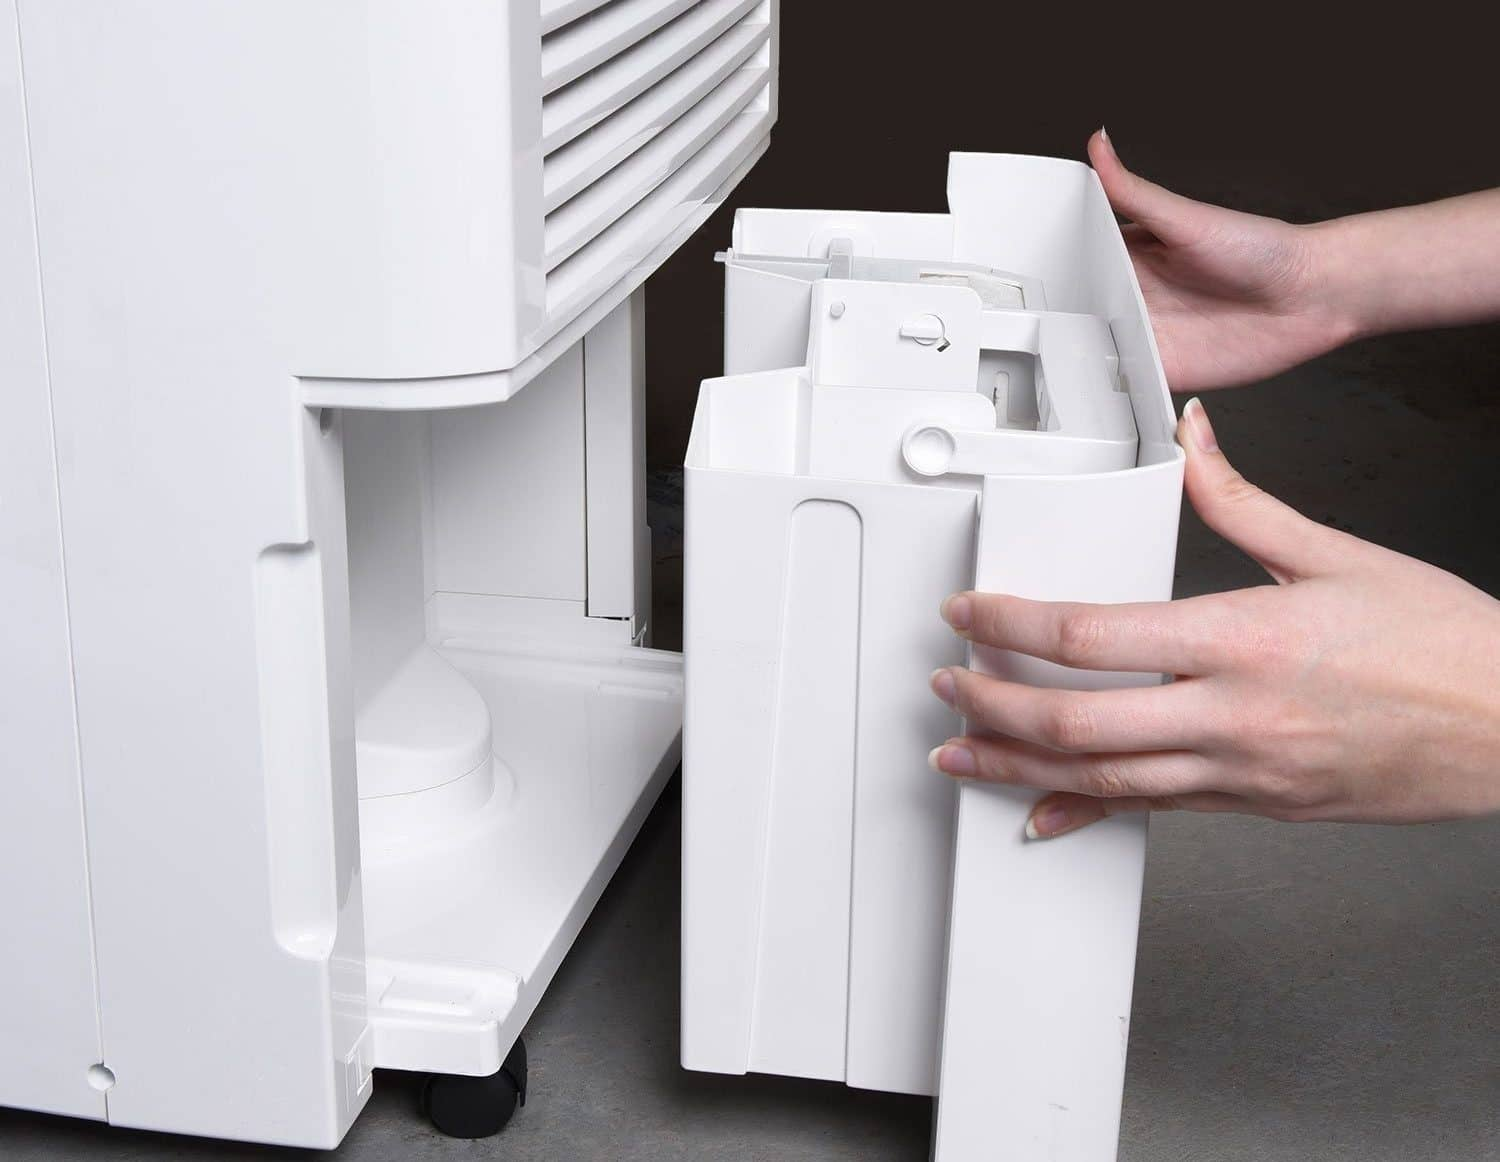 Ivation 70 Pint Dehumidifier removable tankIvation 70 Pint Dehumidifier removable tankIvation 70 Pint Dehumidifier removable tank